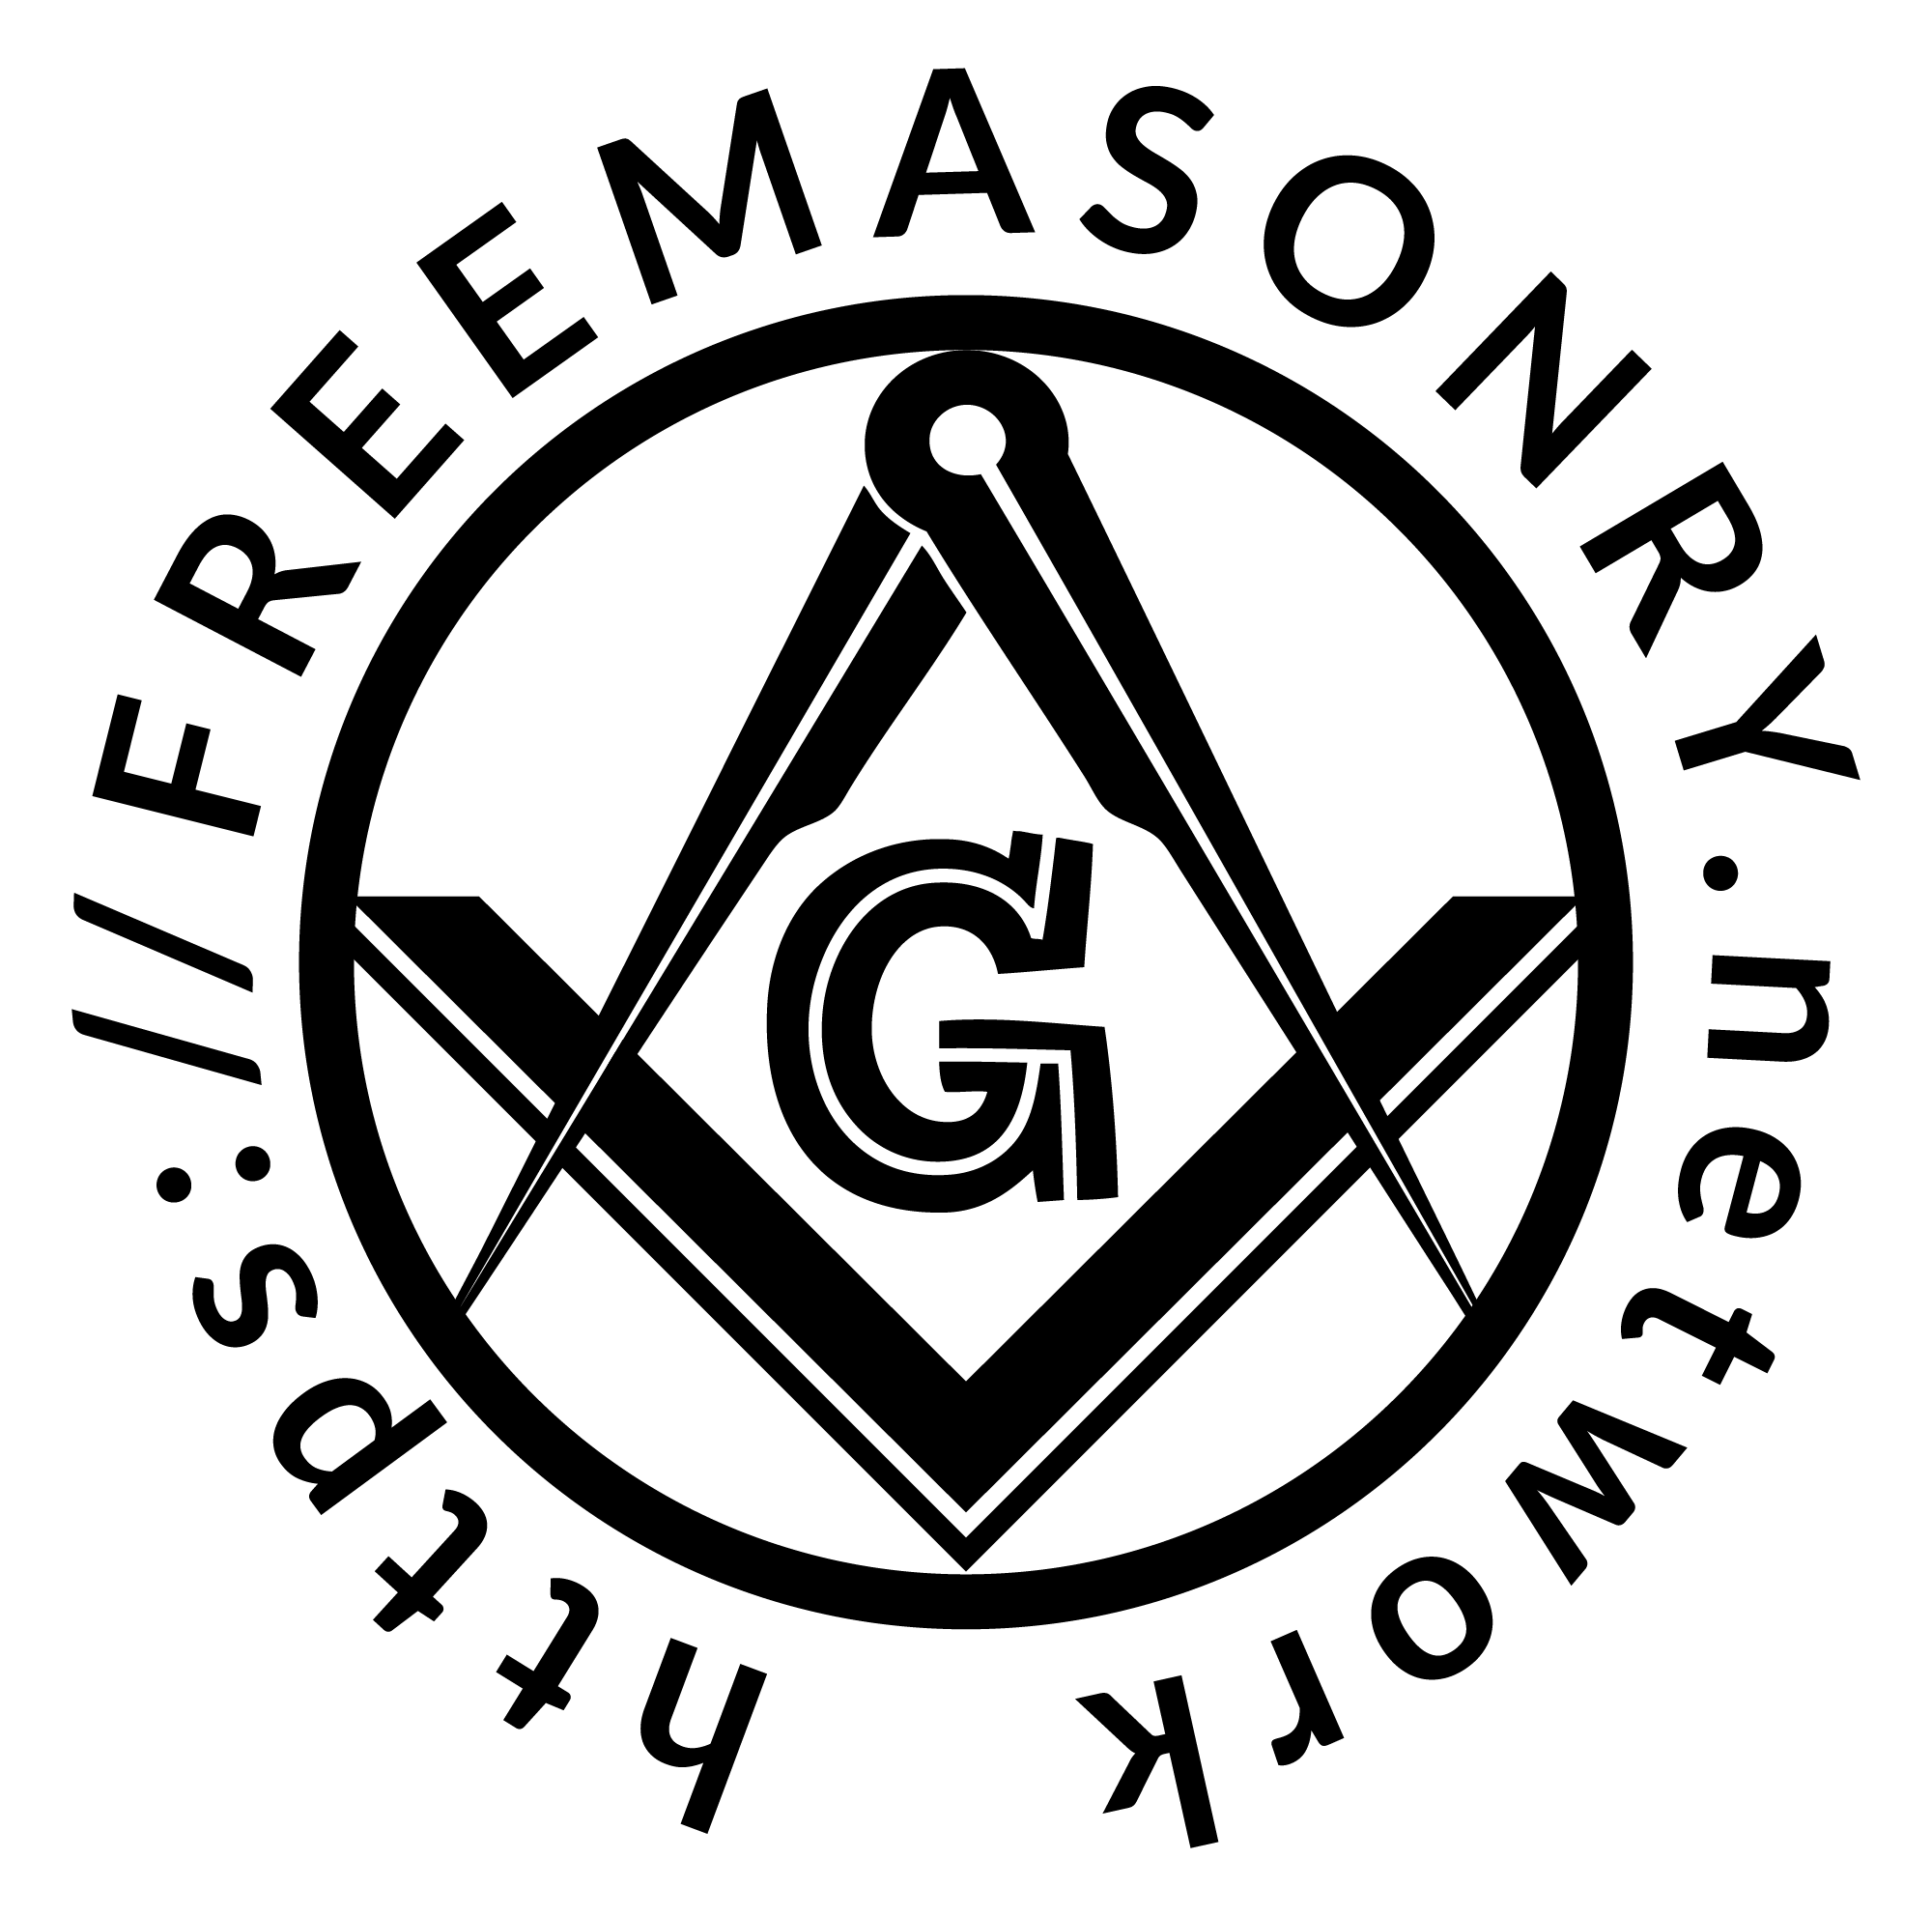 TETRACTYS IN FREEMASONRY